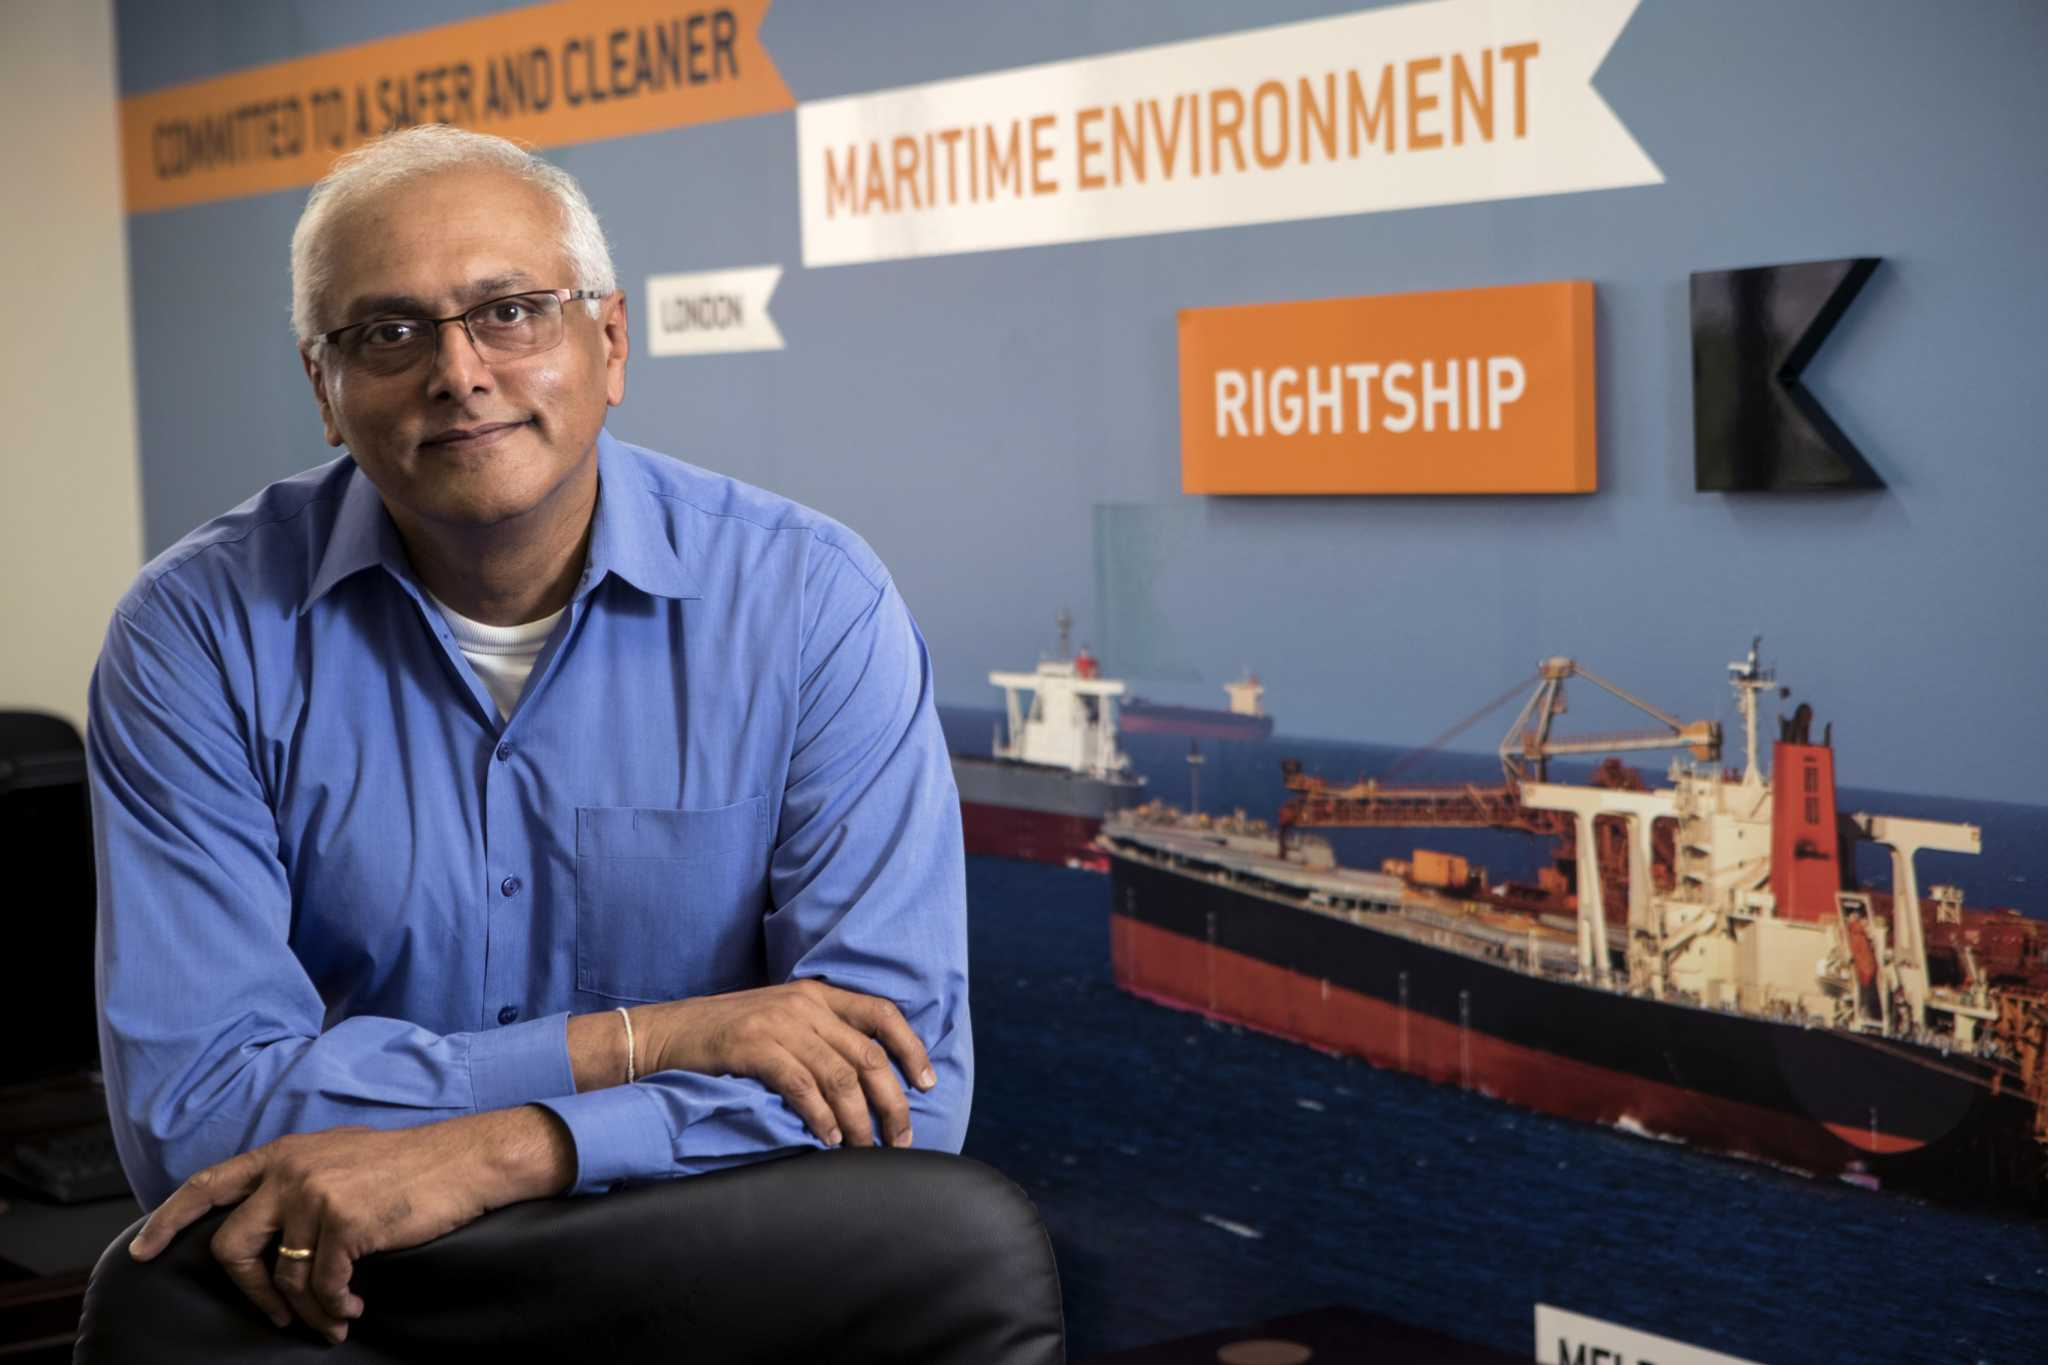 Rightship Uses Big Data To Find Reliable Vessels